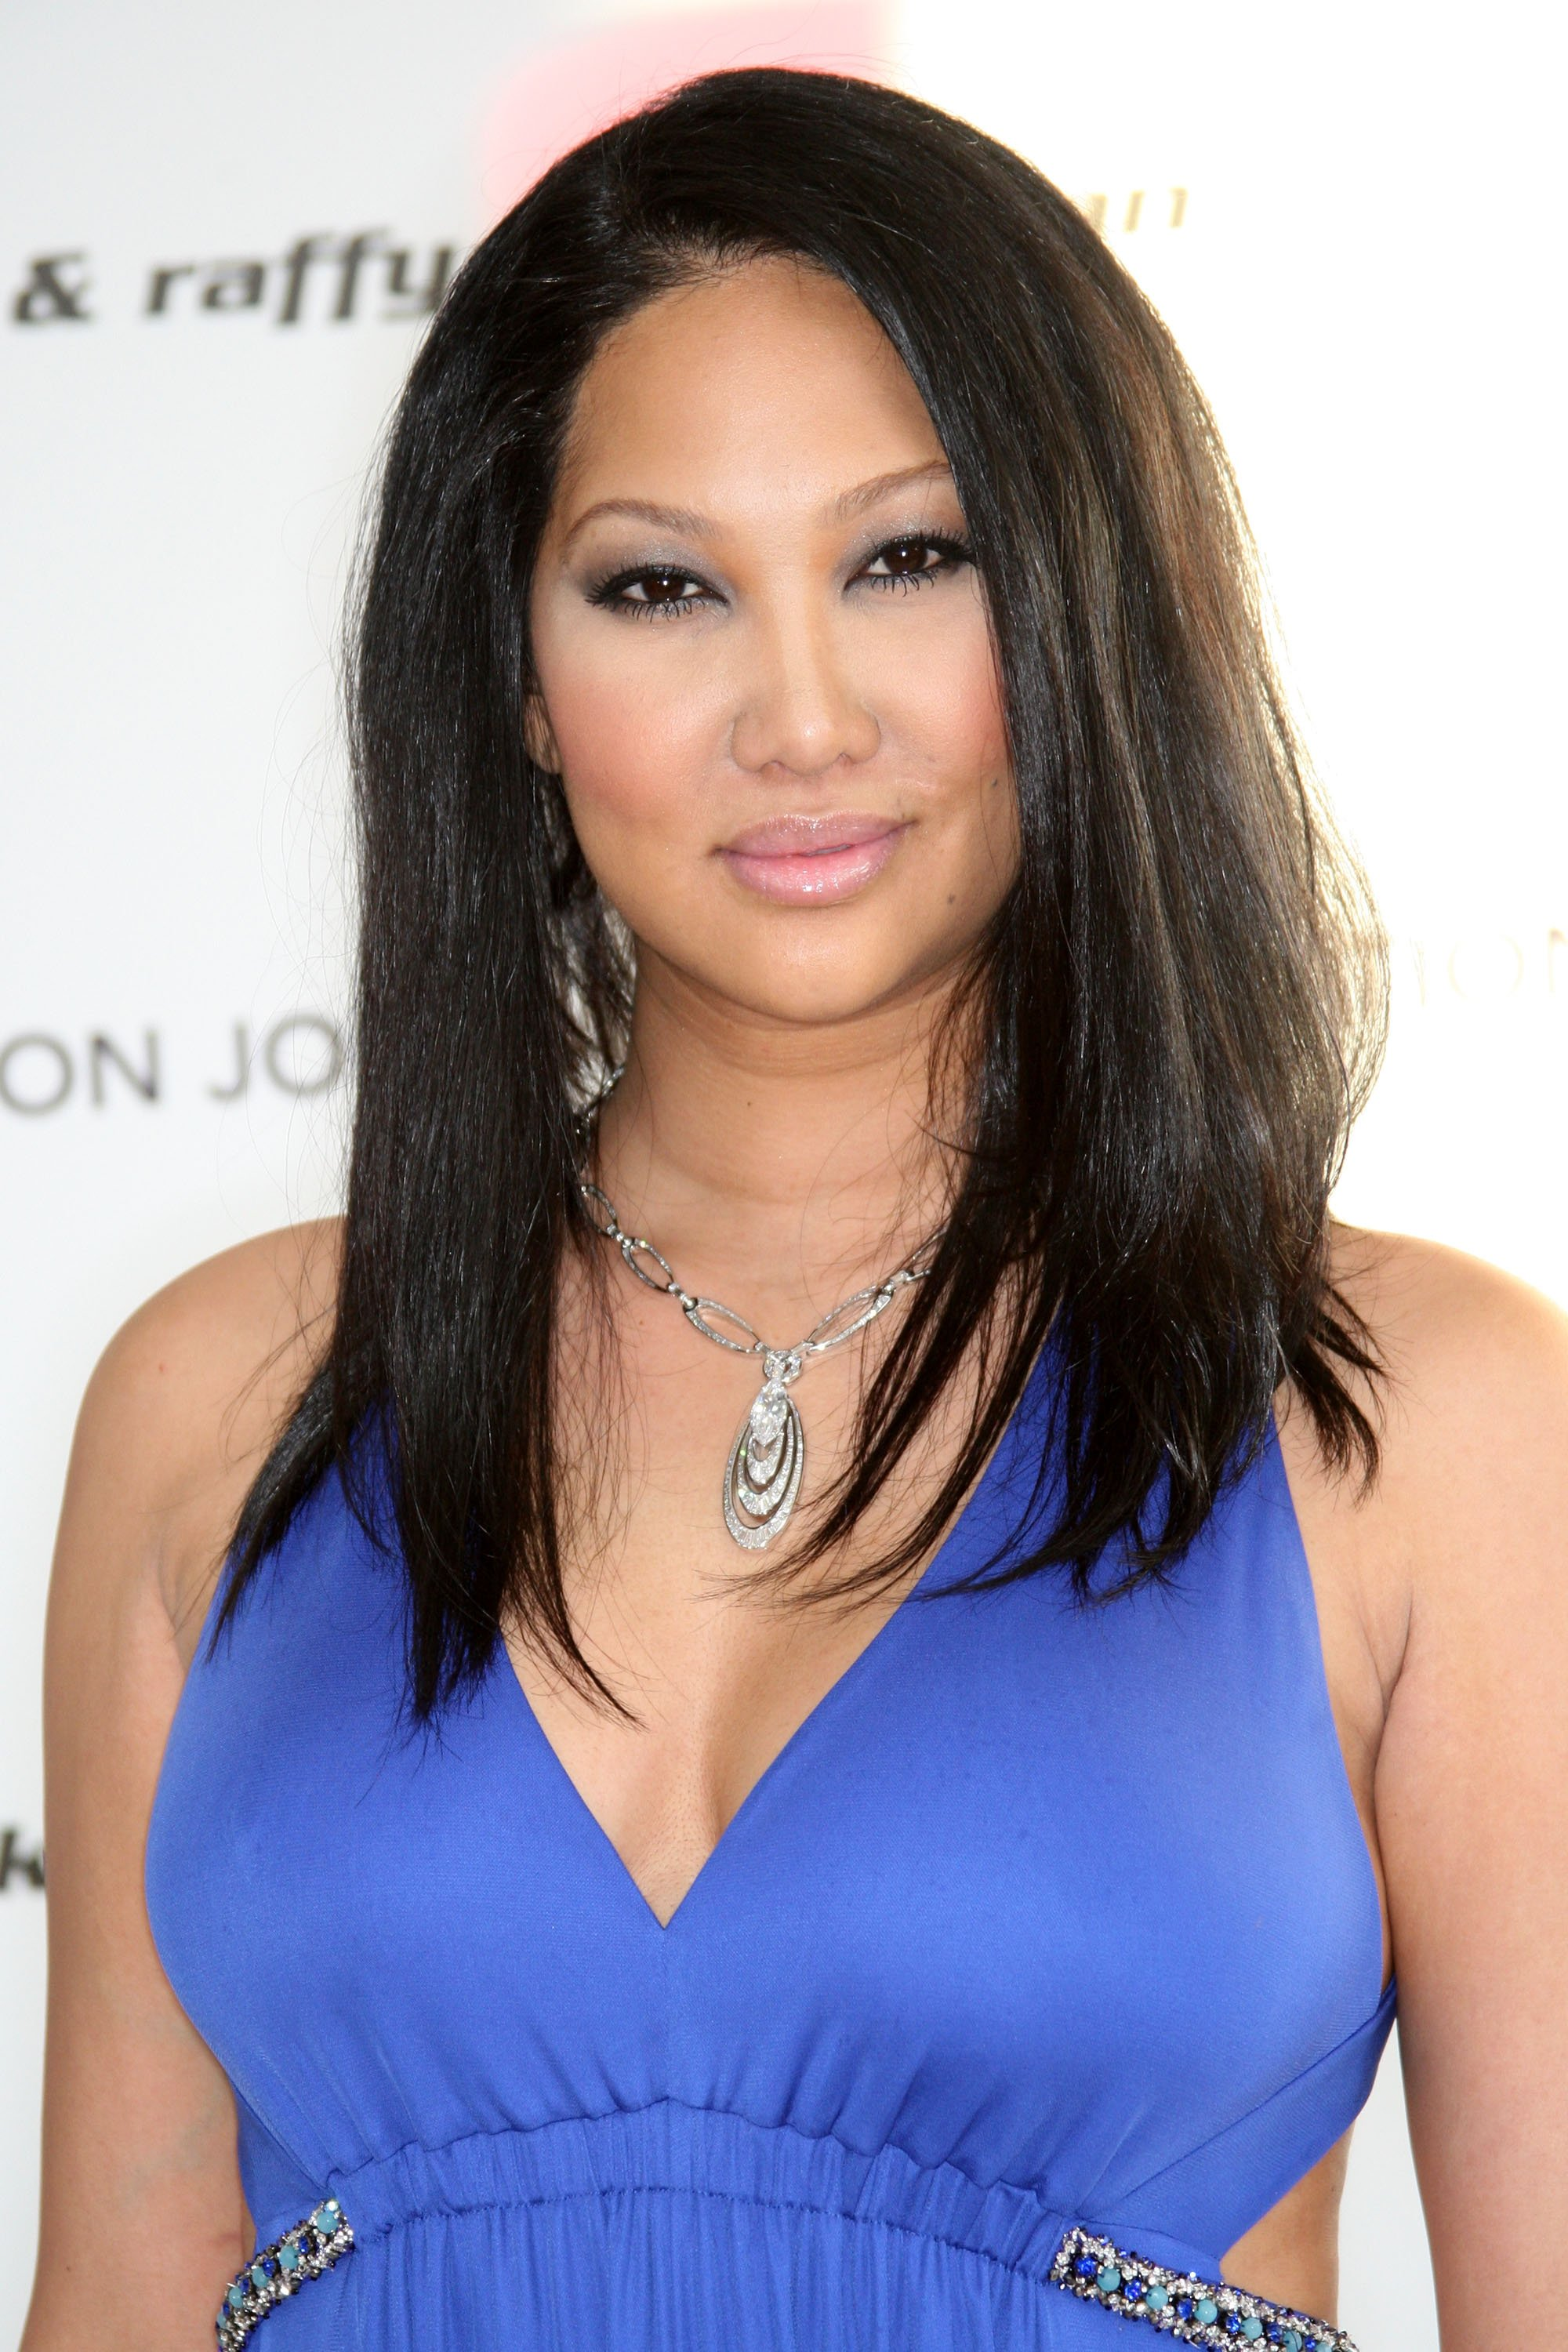 Kimora Lee Simmons at the Elton John AIDS Foundation Oscar Party at Pacific Design Center on March 7, 2010 in West Hollywood, California. | Source: Getty Images